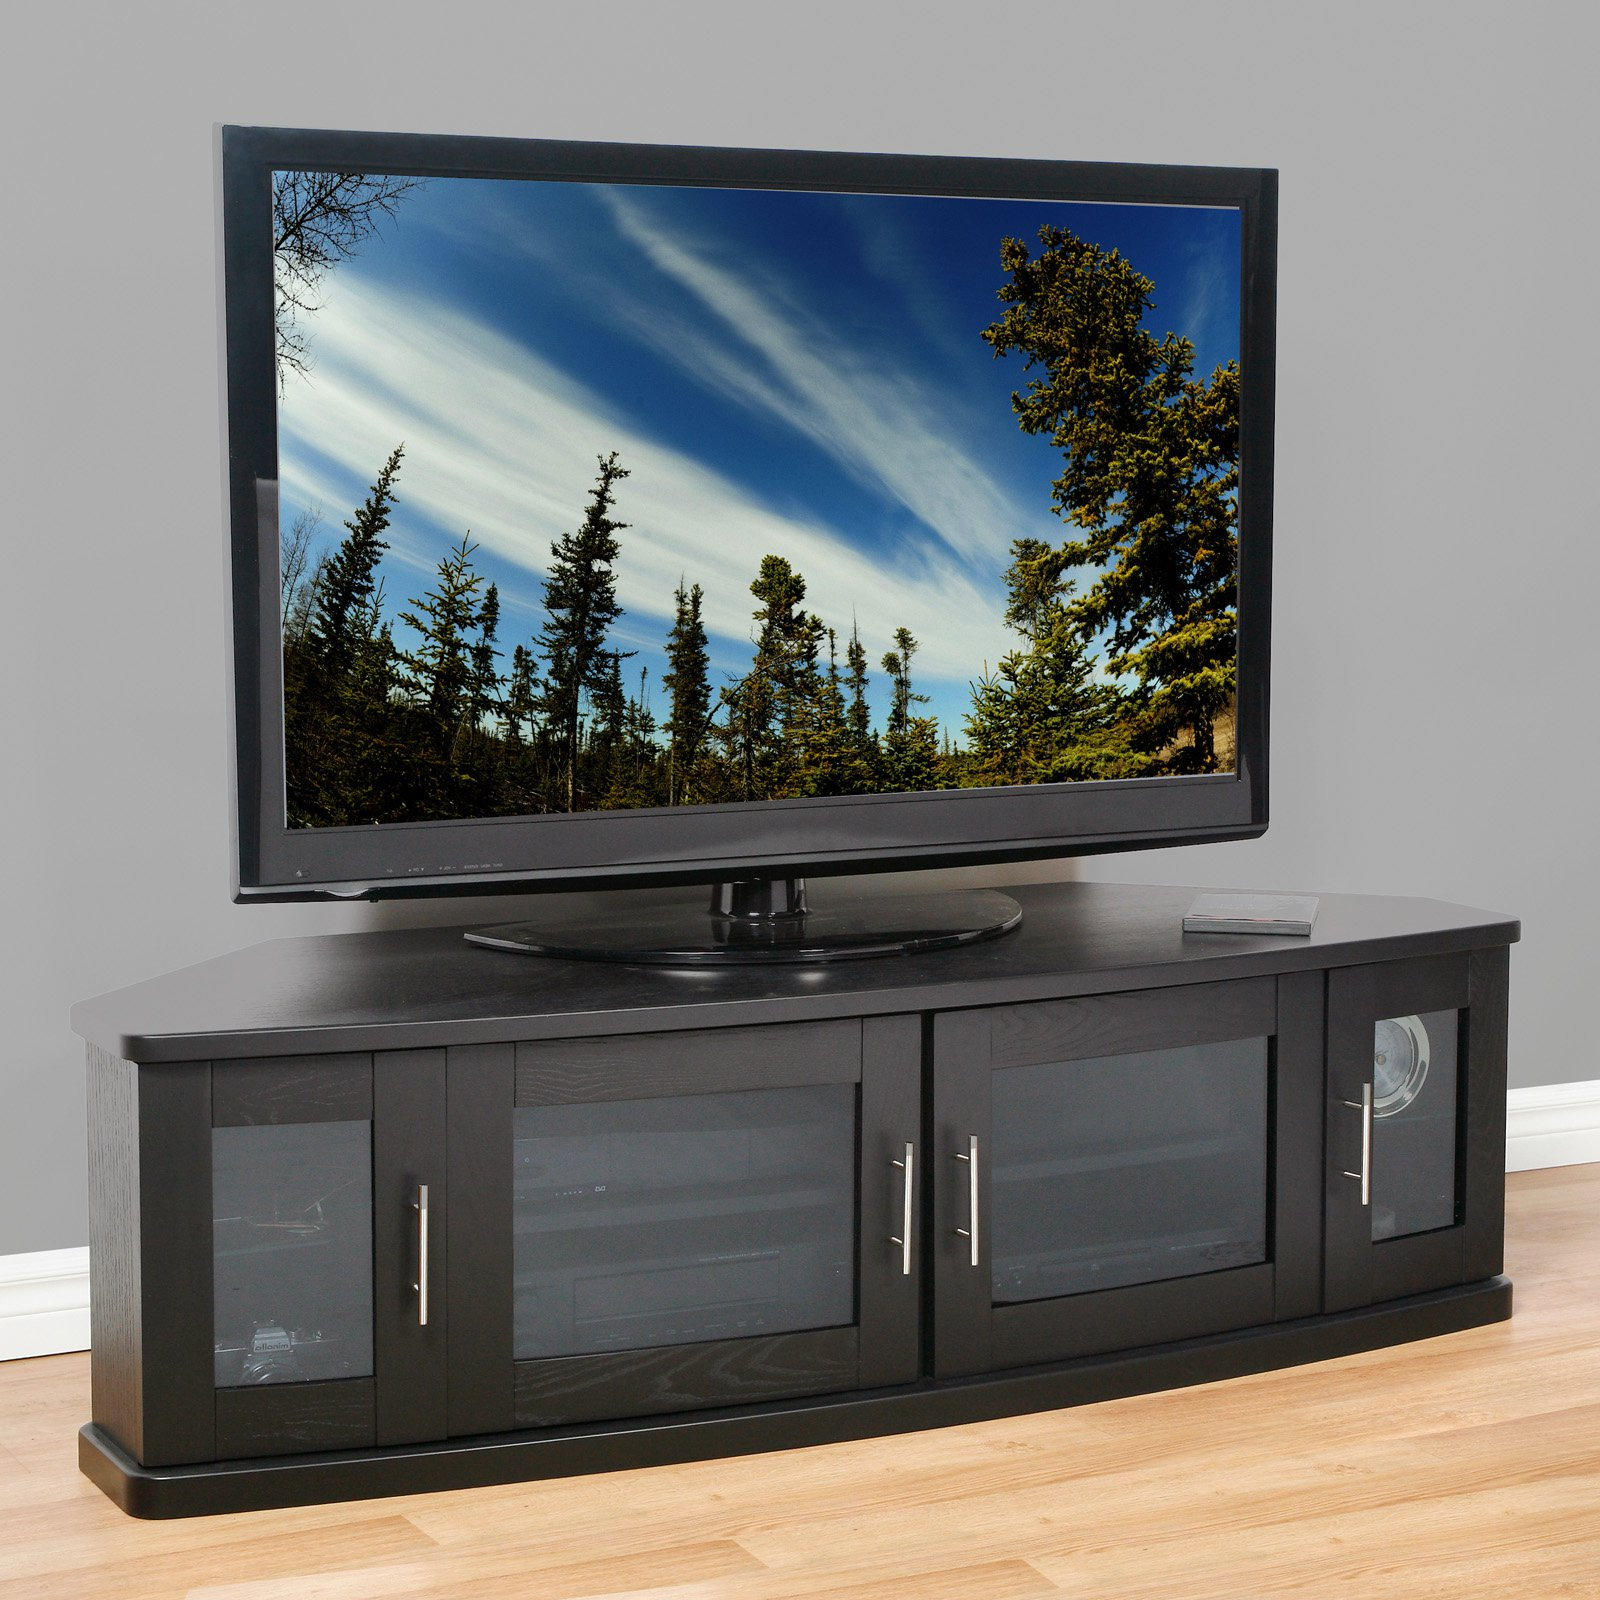 Well Liked Black Corner Tv Cabinets With Glass Doors Pertaining To Chrome Display Stands Clear Tv With Glass Shelves Stand Corner (View 3 of 20)